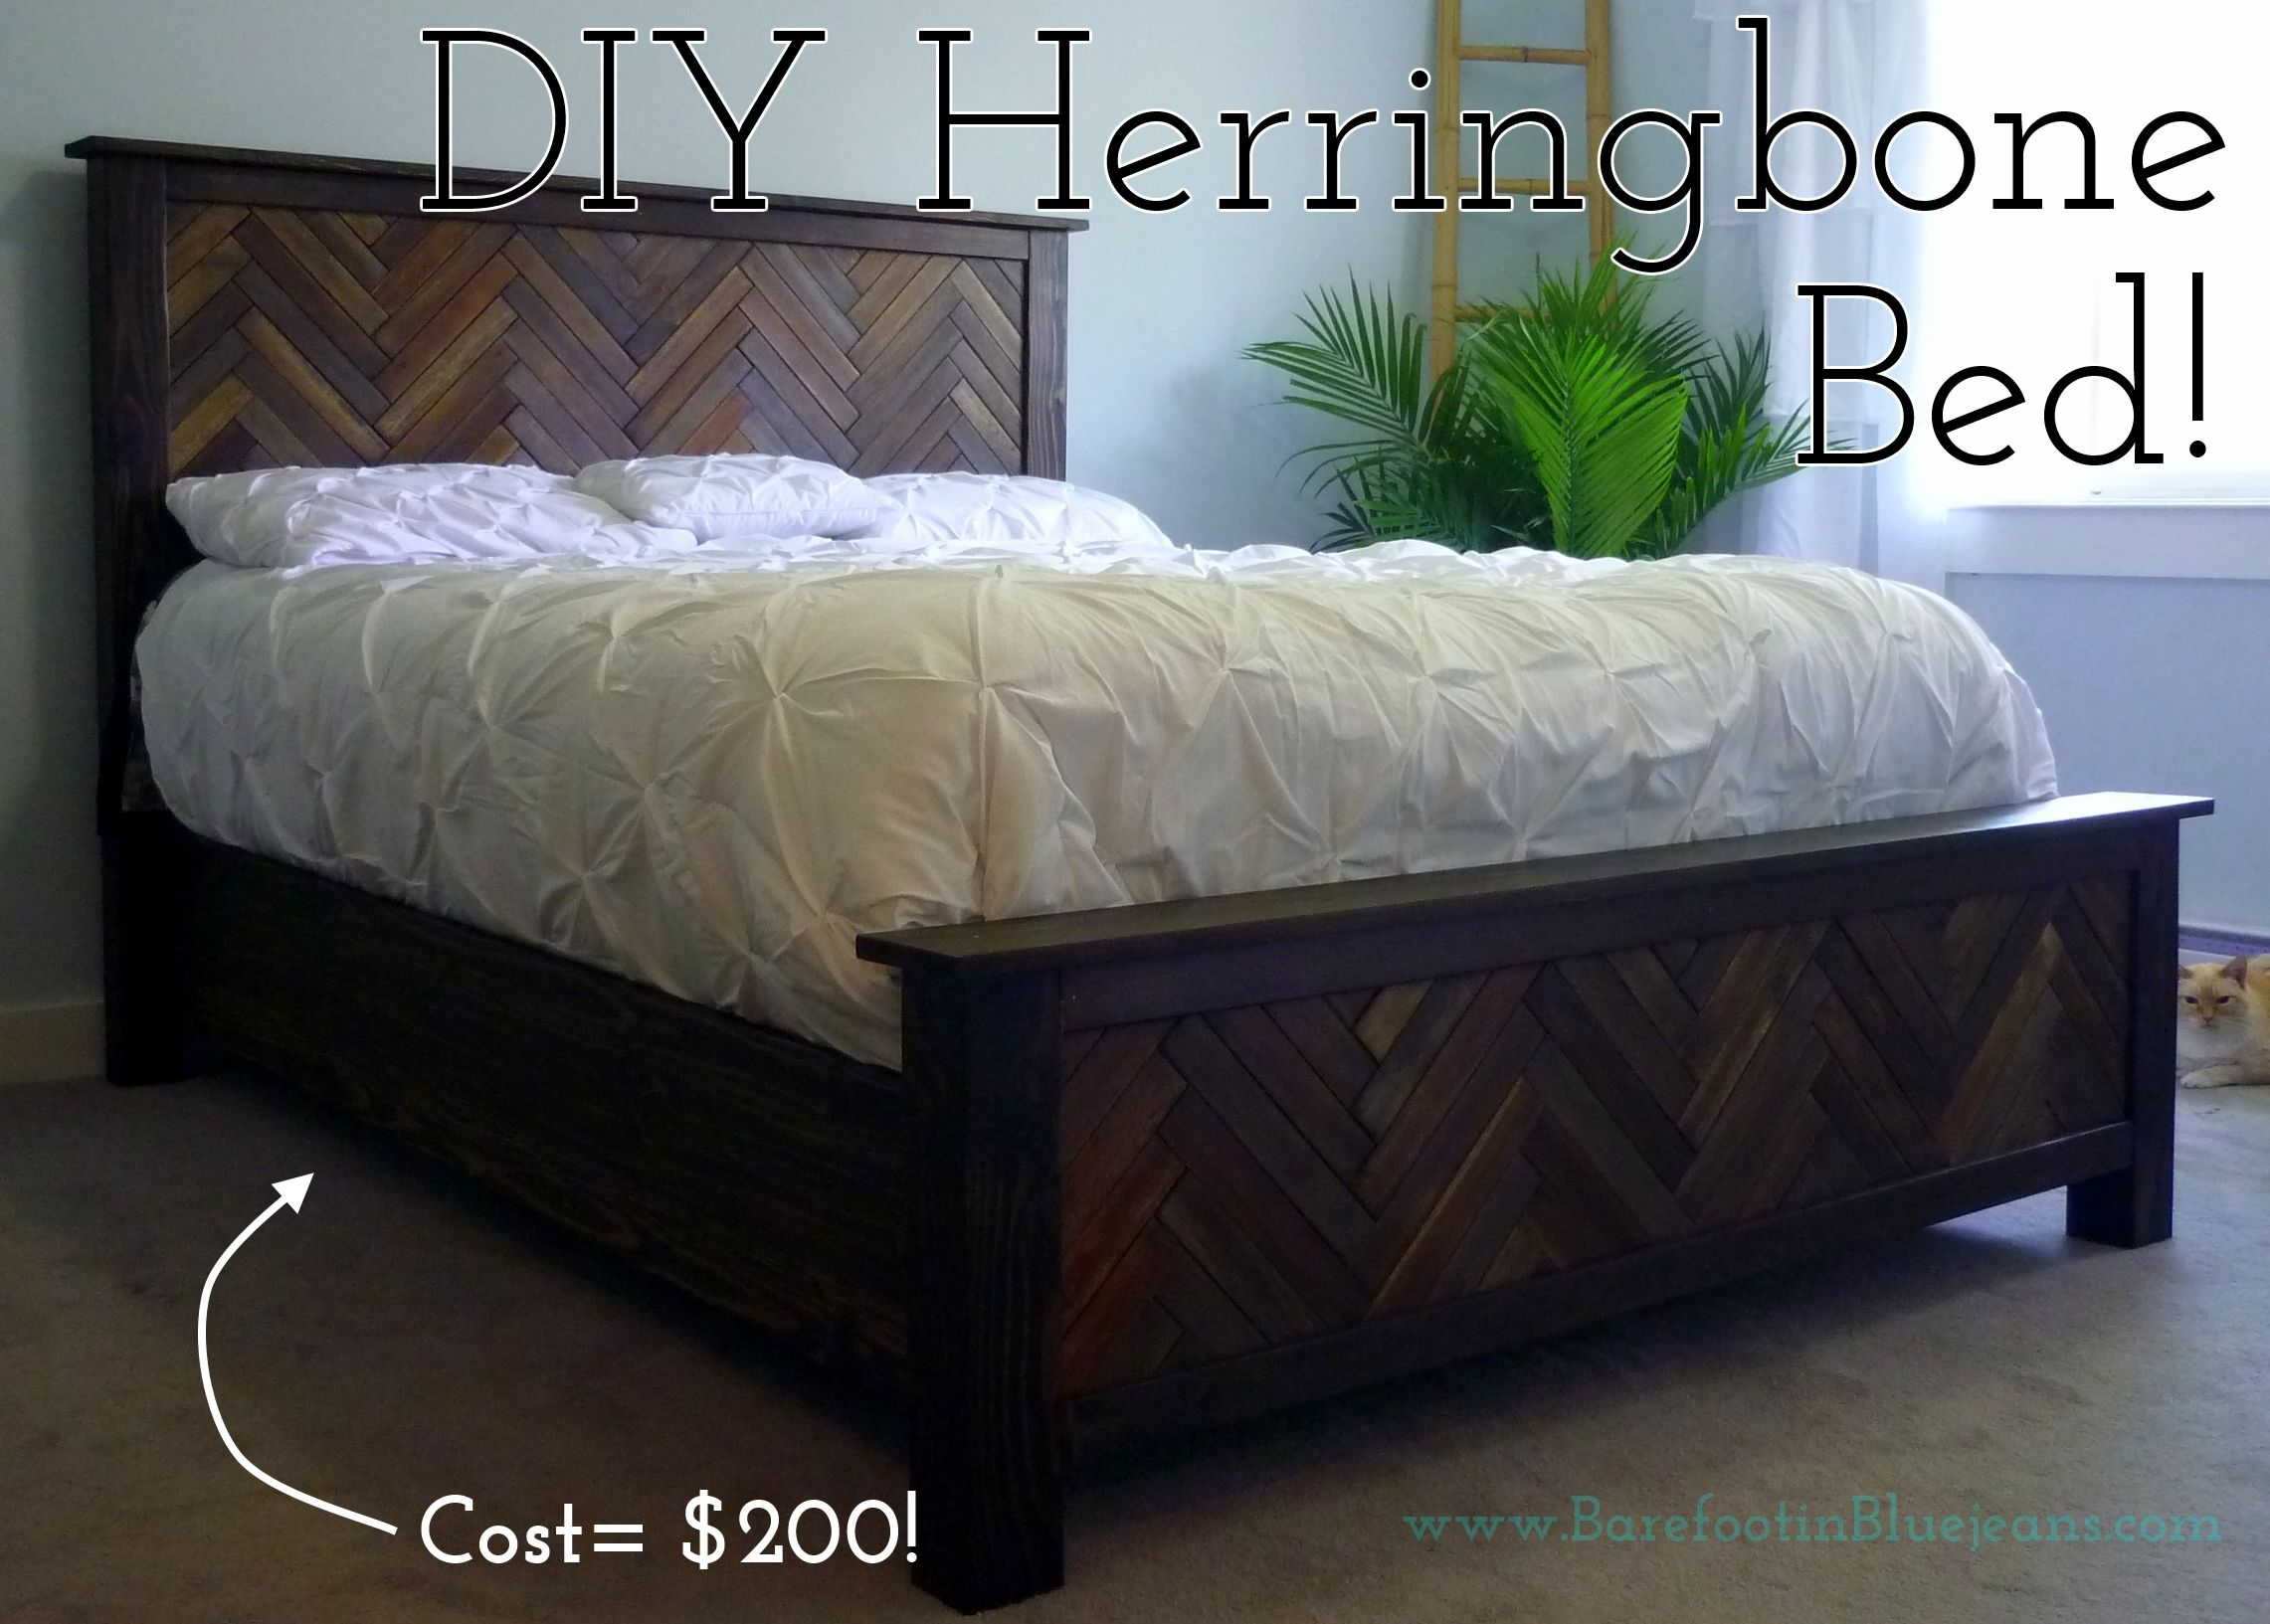 diy herringbone bed, headboard, footboard Bed frame